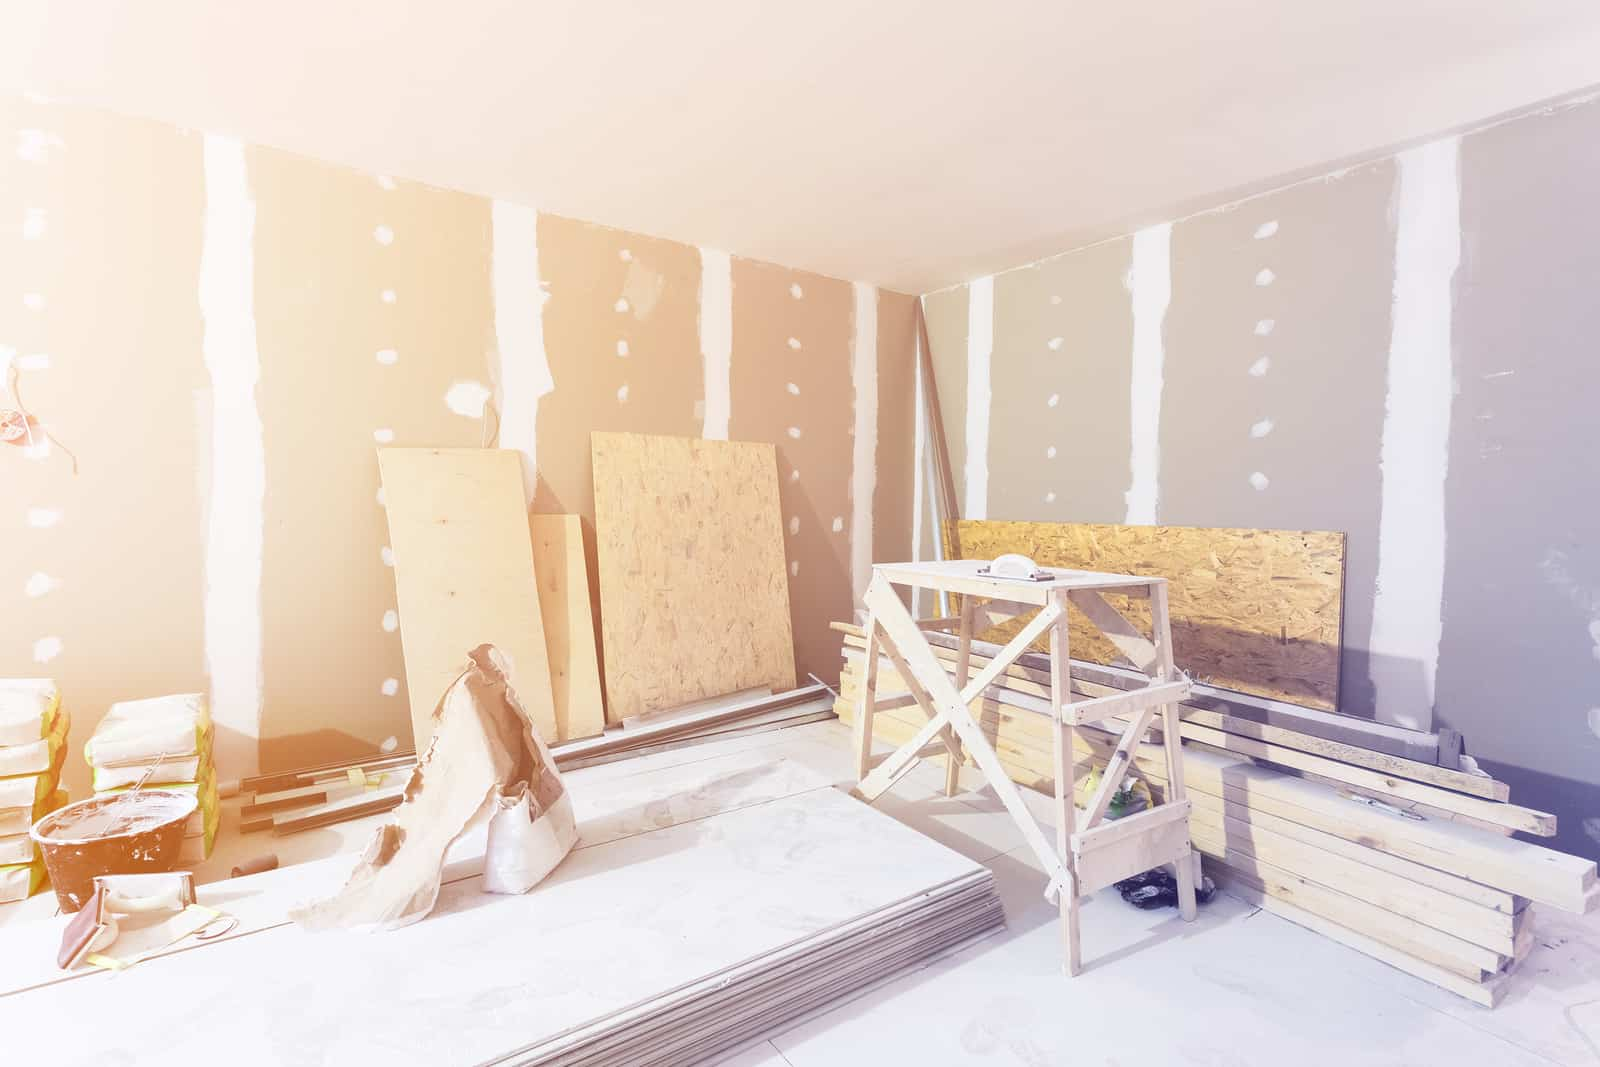 What to look for when buying a home to renovate